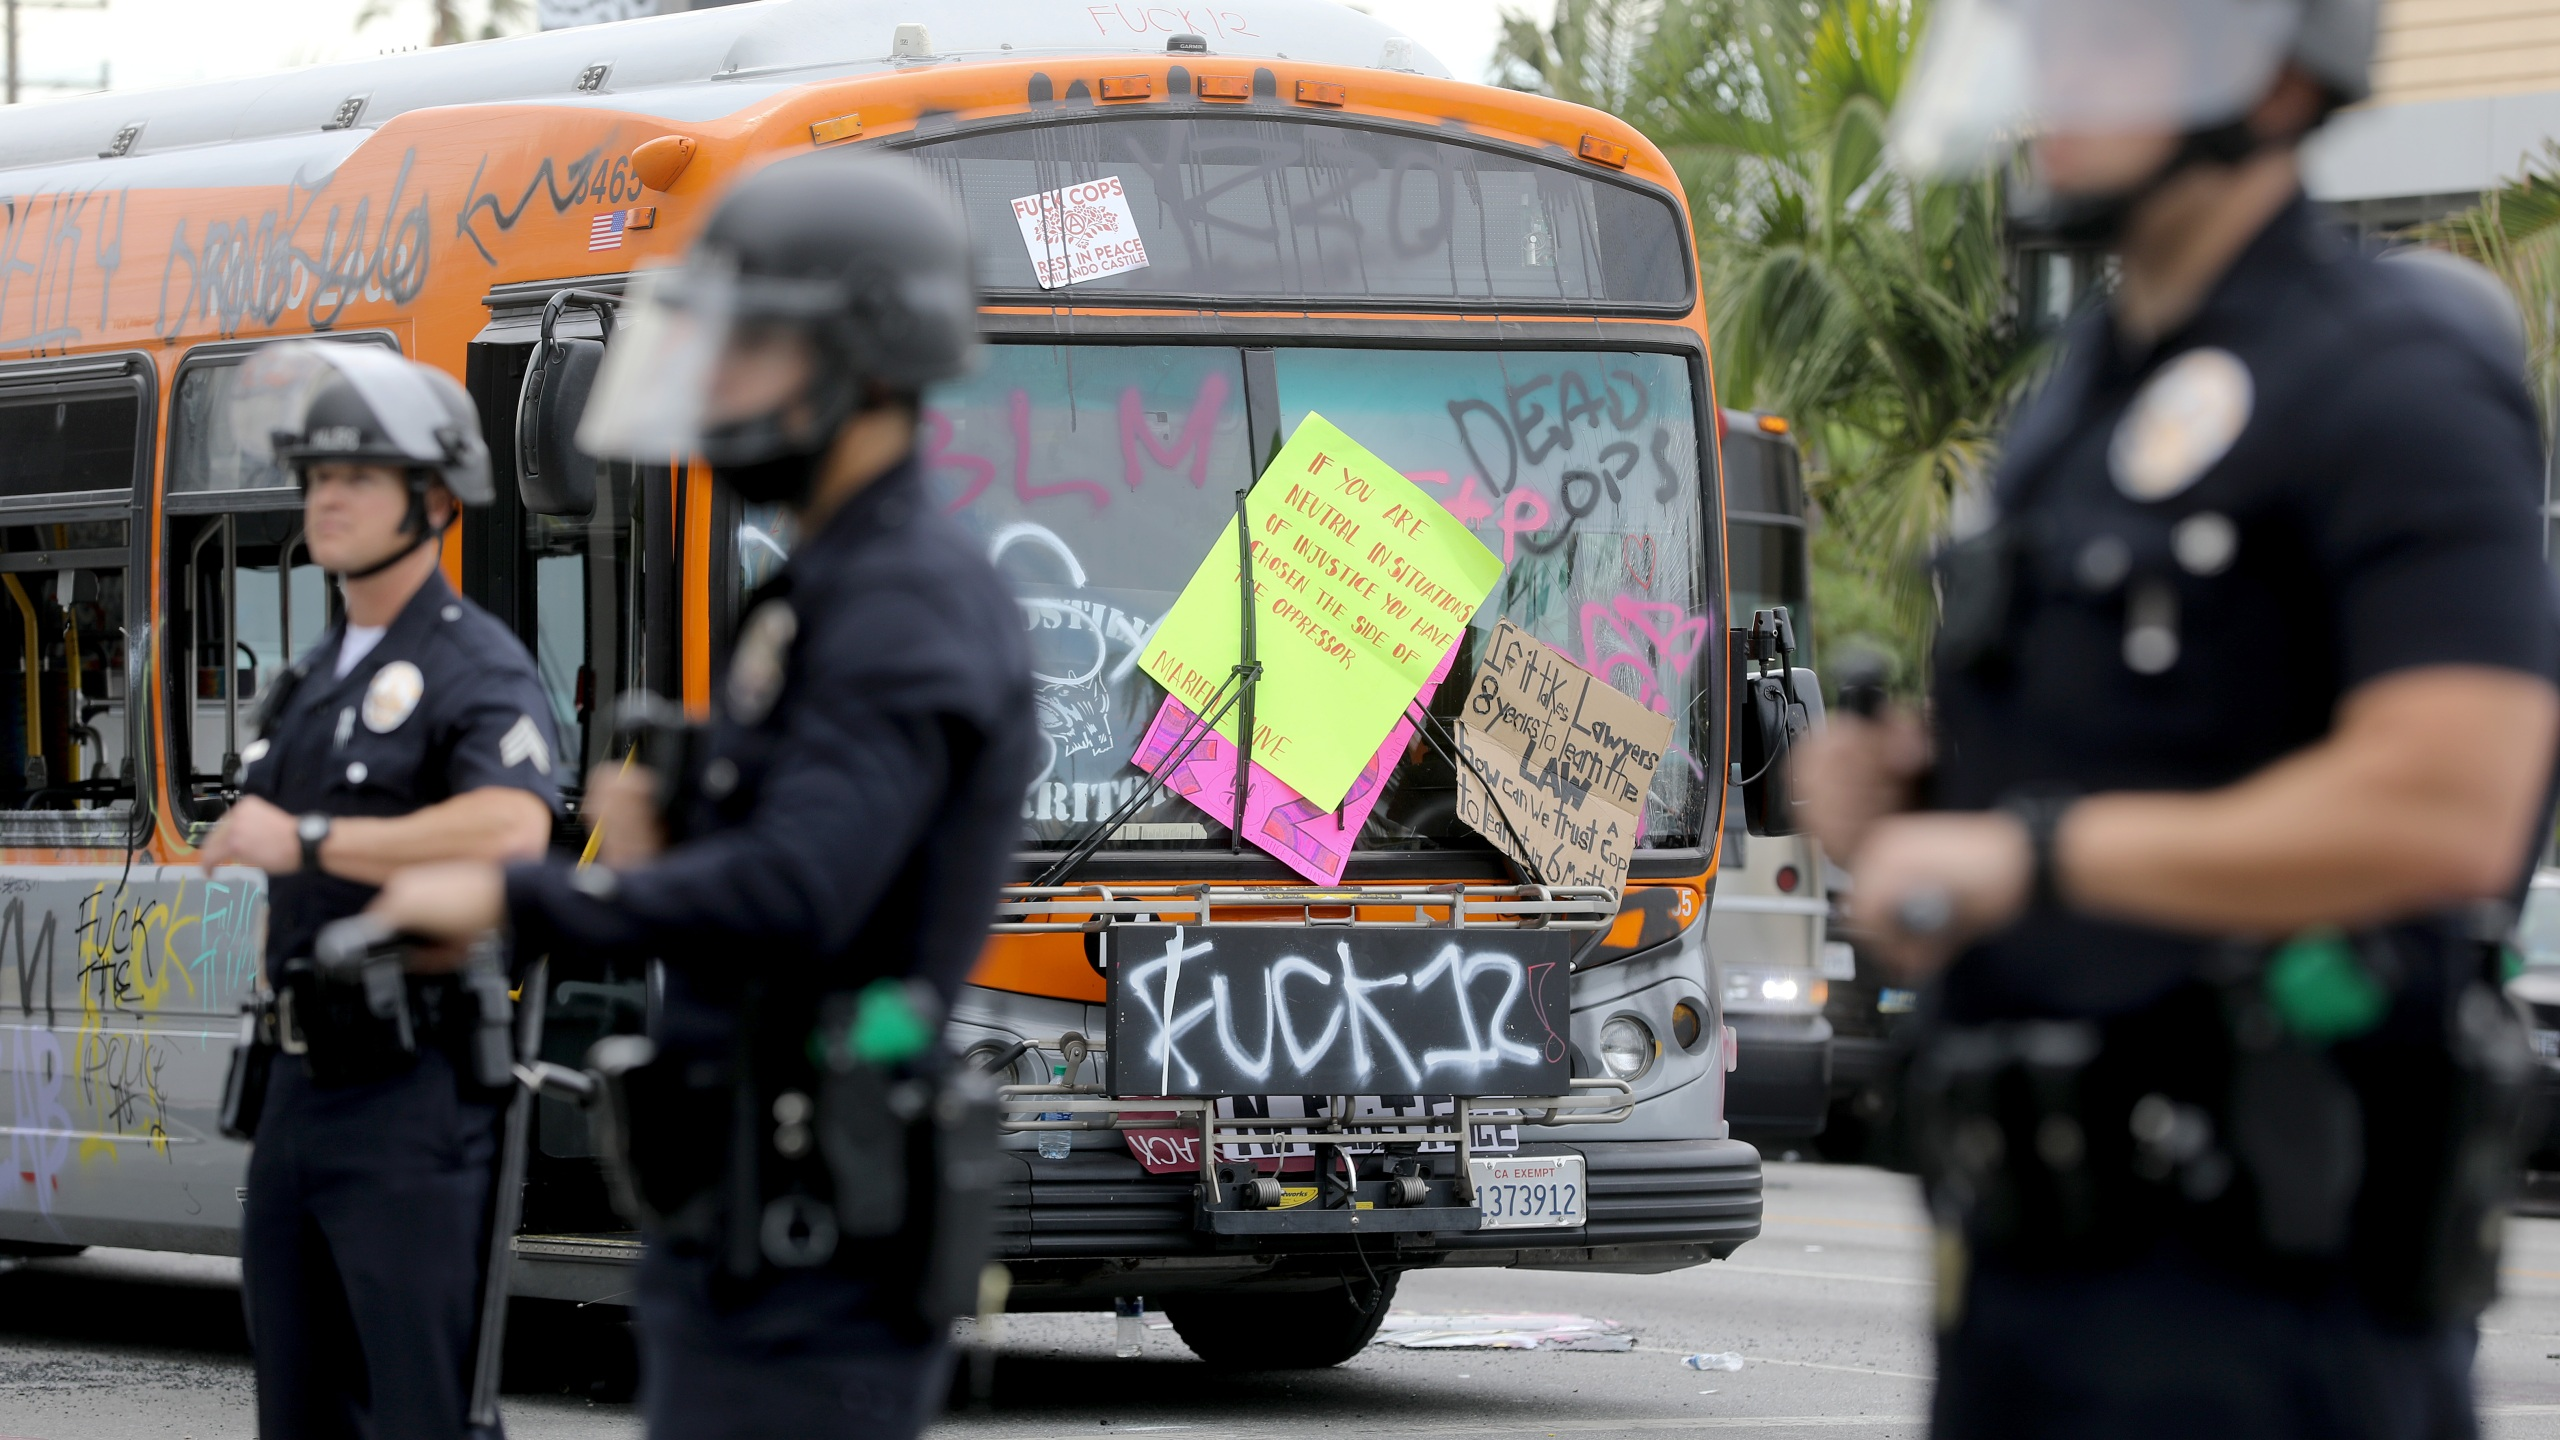 Police officers keep watch near a damaged bus during demonstrations following the death of George Floyd on May 30, 2020, in Los Angeles. (Mario Tama/Getty Images)